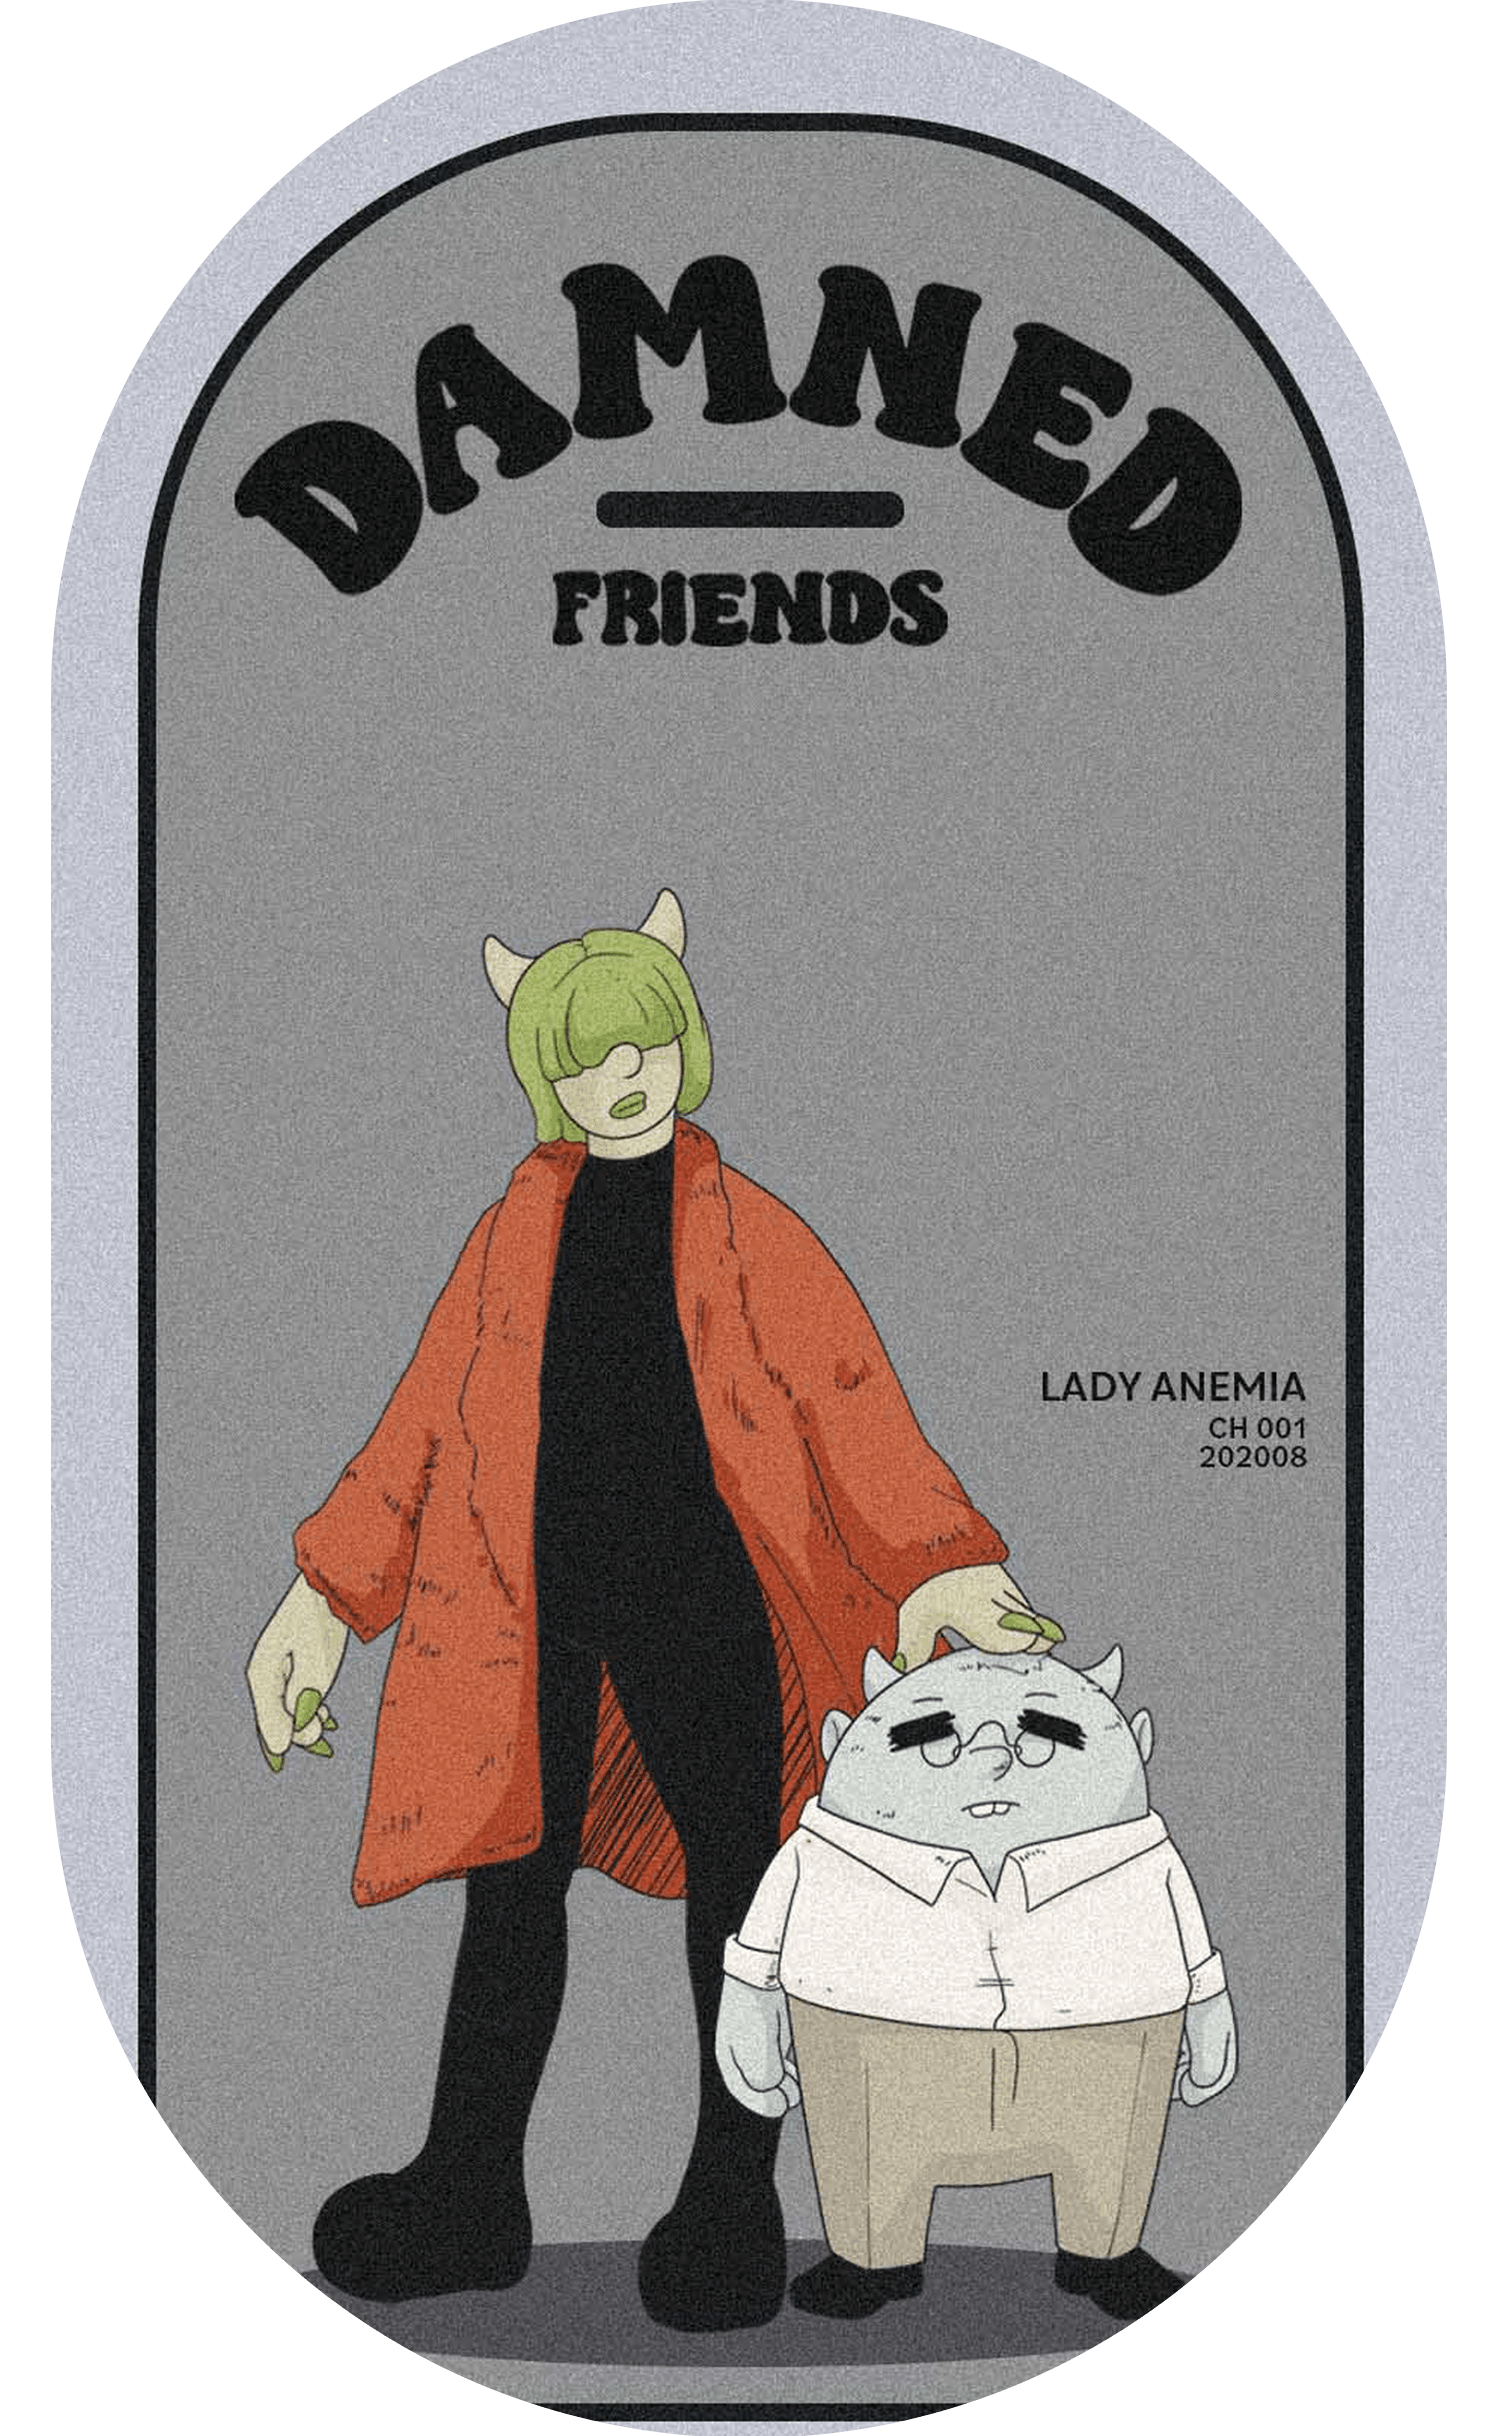 Damned Friends